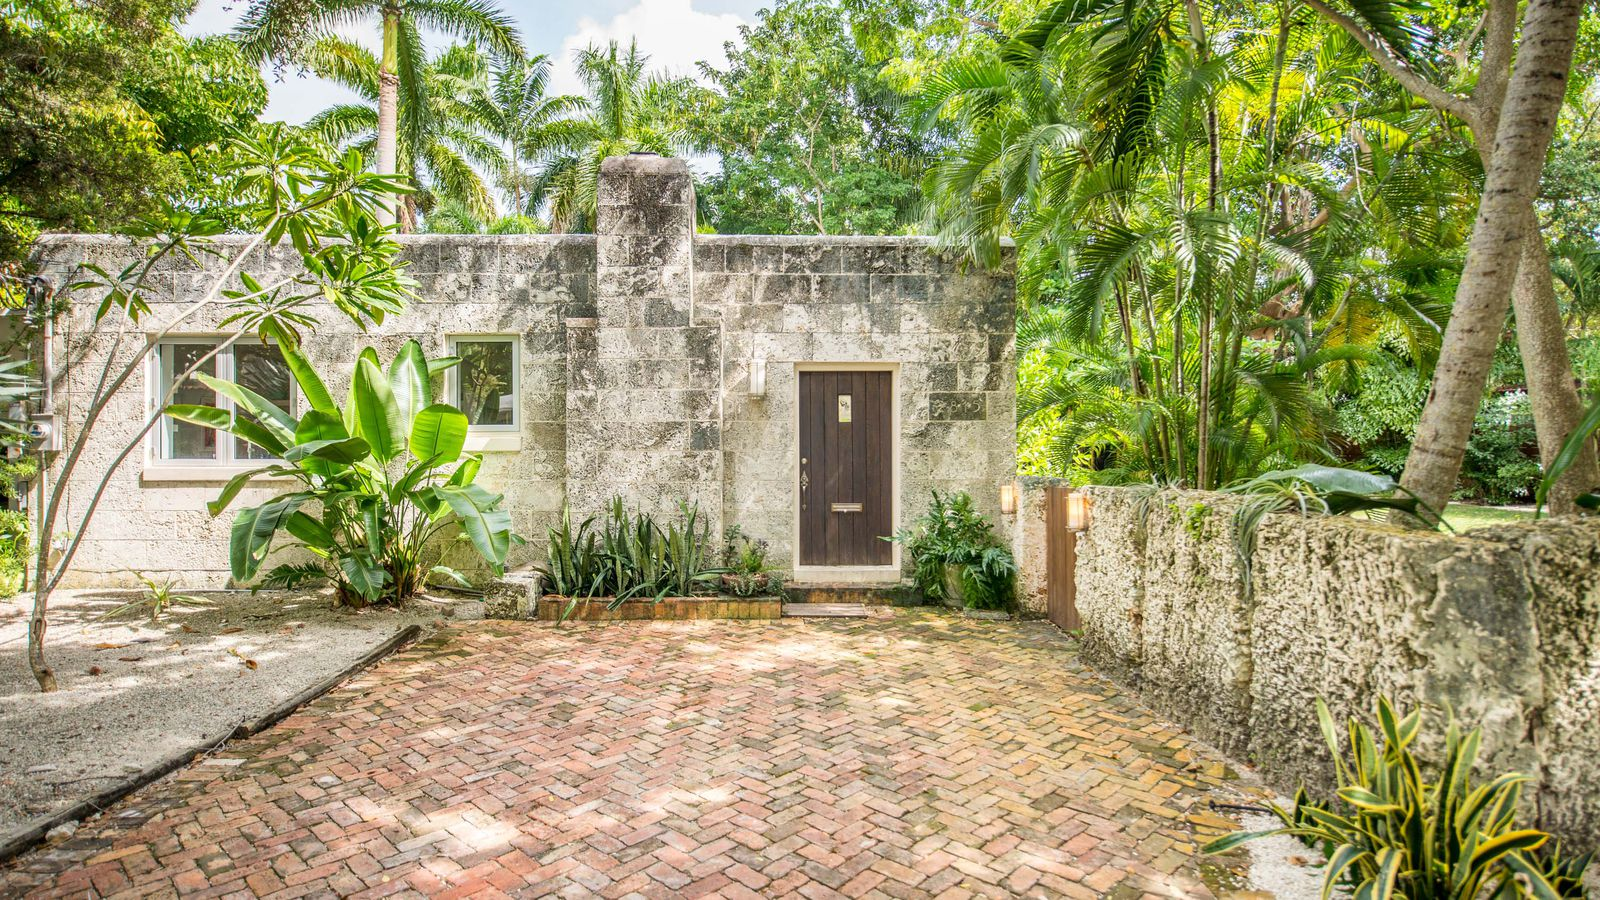 Miami peacock house in coconut grove sells for 850k for Grove house